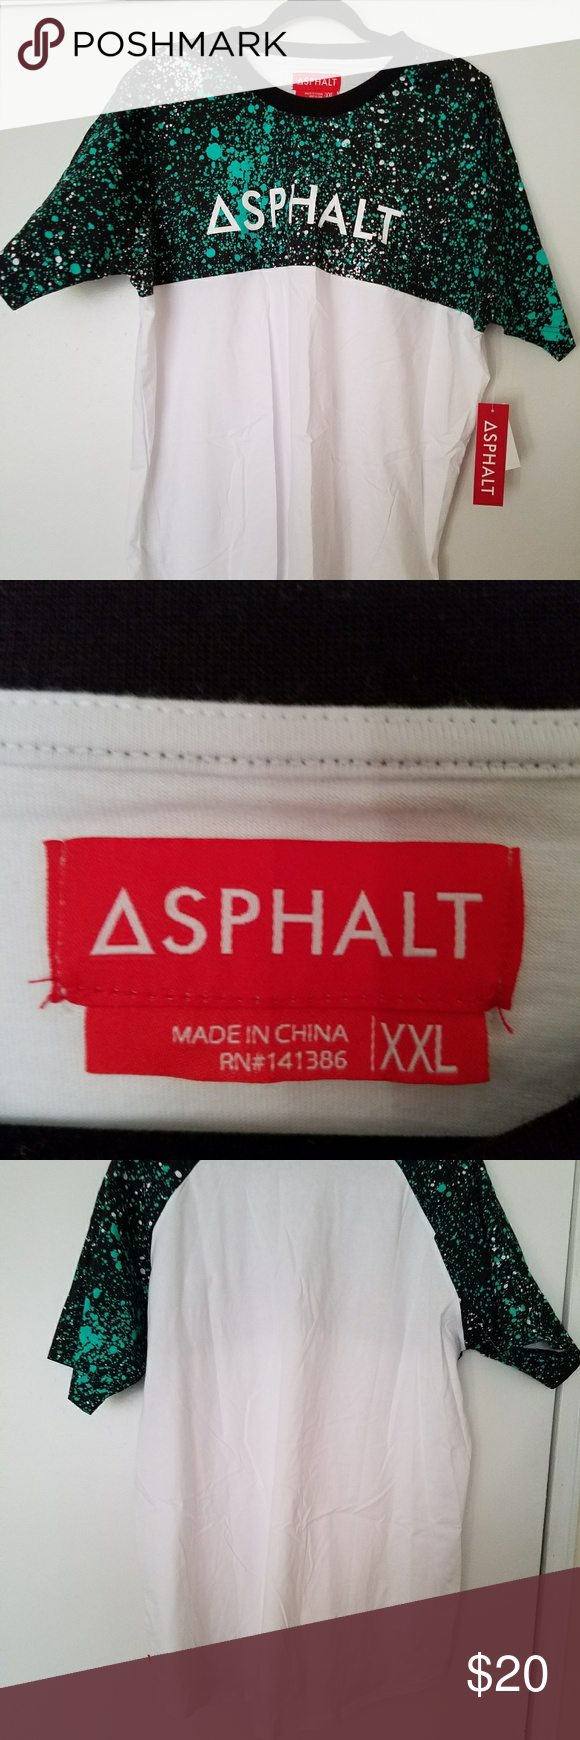 NWT Asphalt Tee NWT never worn,very comfortable,100% cotton. Asphalt Yacht Club Shirts Tees - Short Sleeve